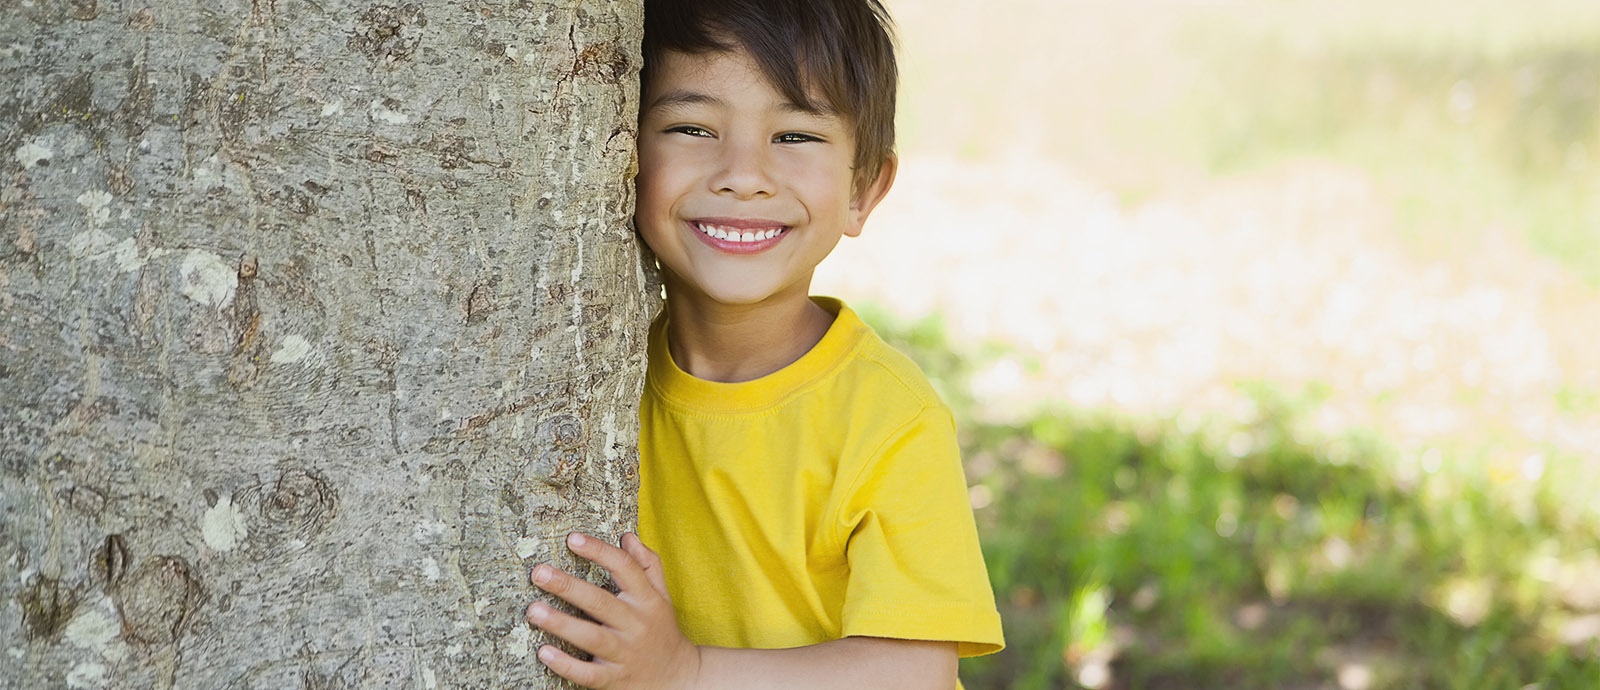 slide-smiling-boy-on-tree-2